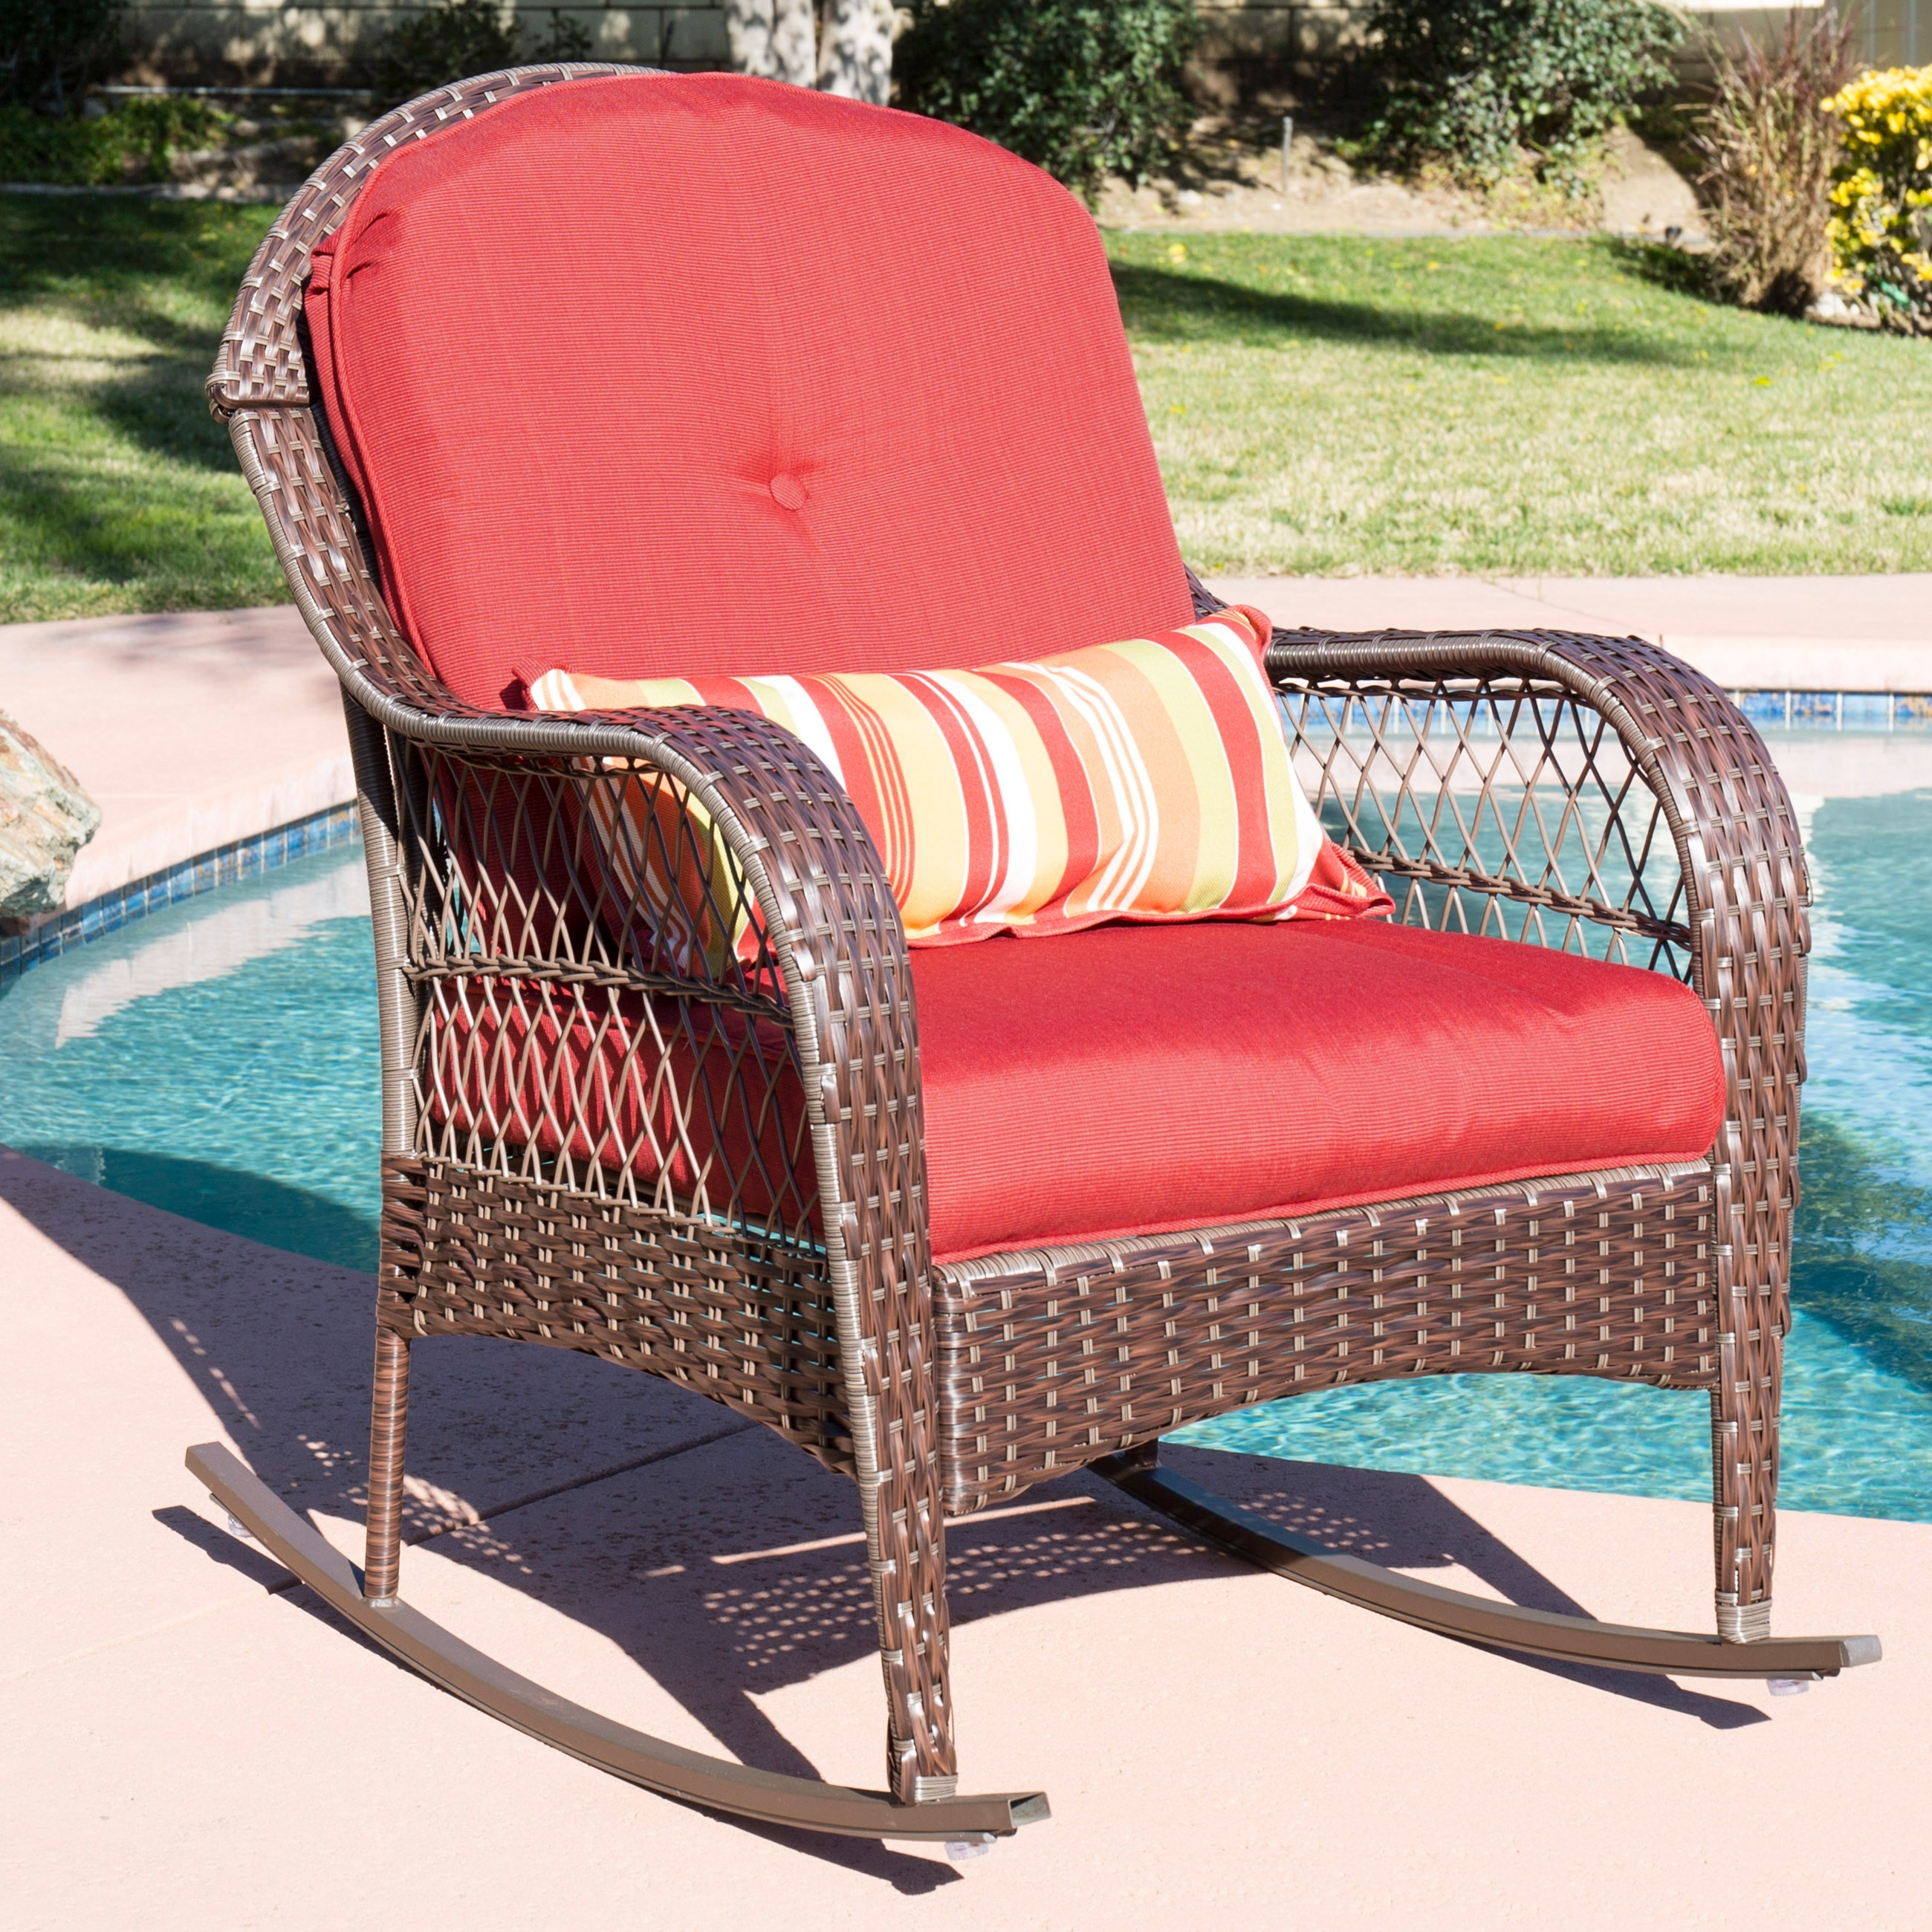 Best And Newest Best Choice Products Wicker Rocking Chair Patio Porch Deck Furniture Pertaining To Used Patio Rocking Chairs (View 8 of 15)